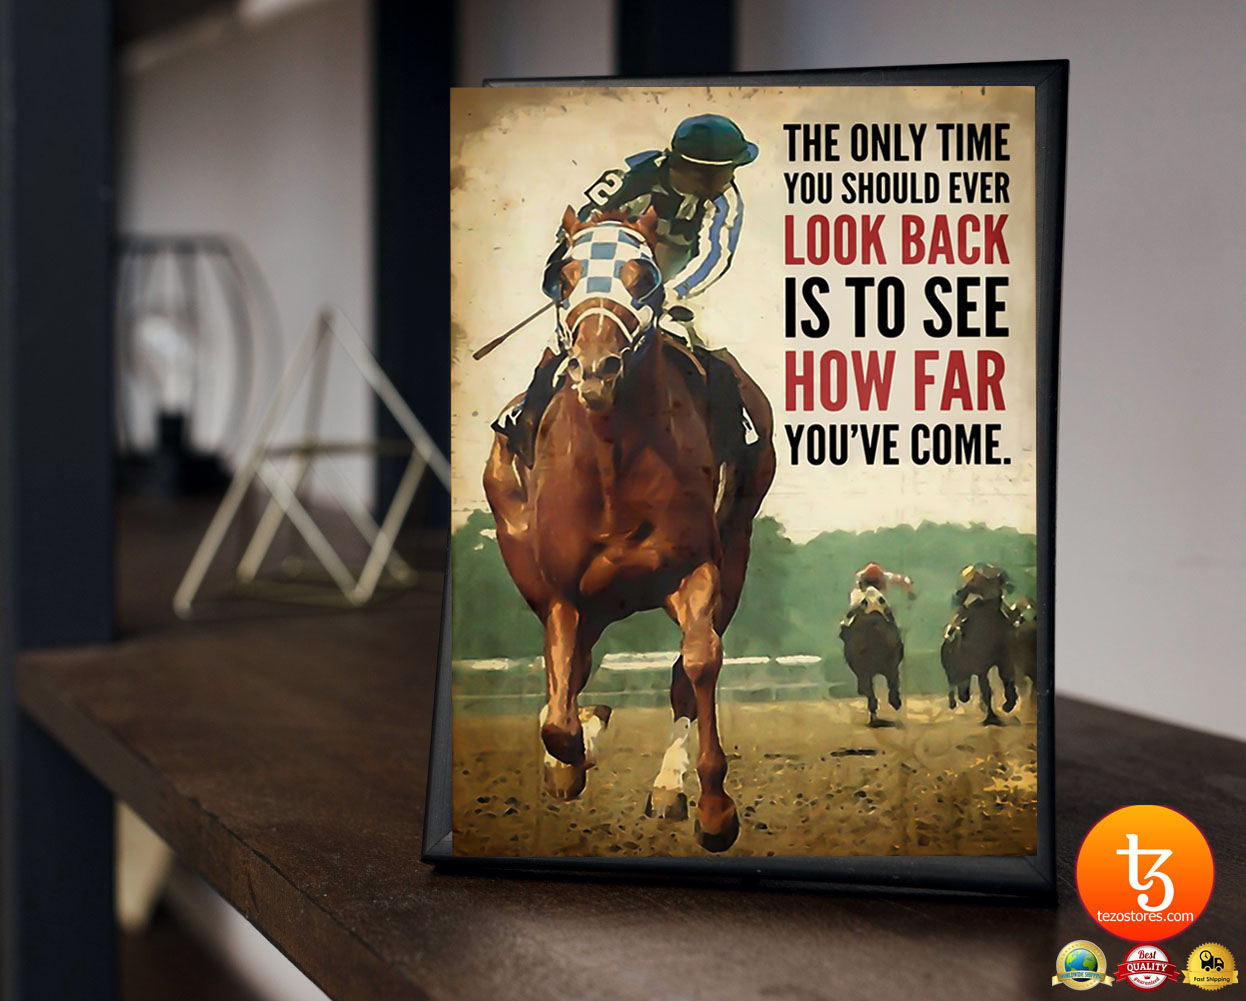 Racing horse The only time you should ever look back is to see how far youve come poster 27